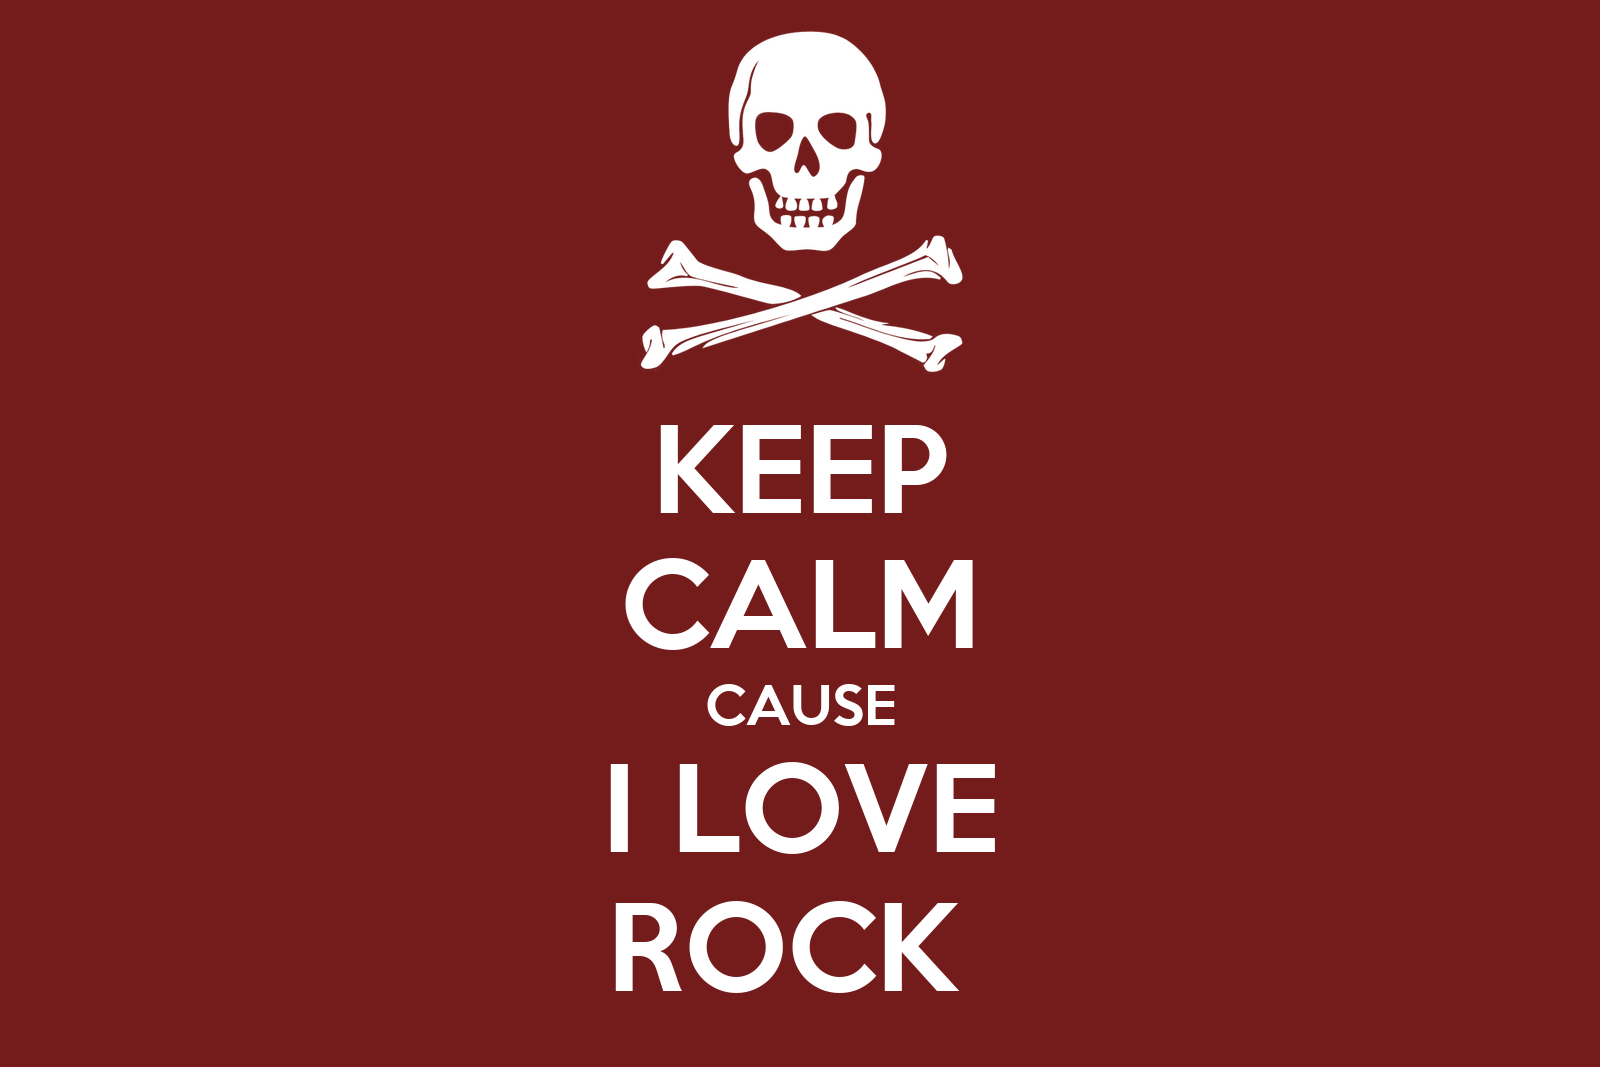 KEEP CALM CAUSE I LOVE ROCK Poster